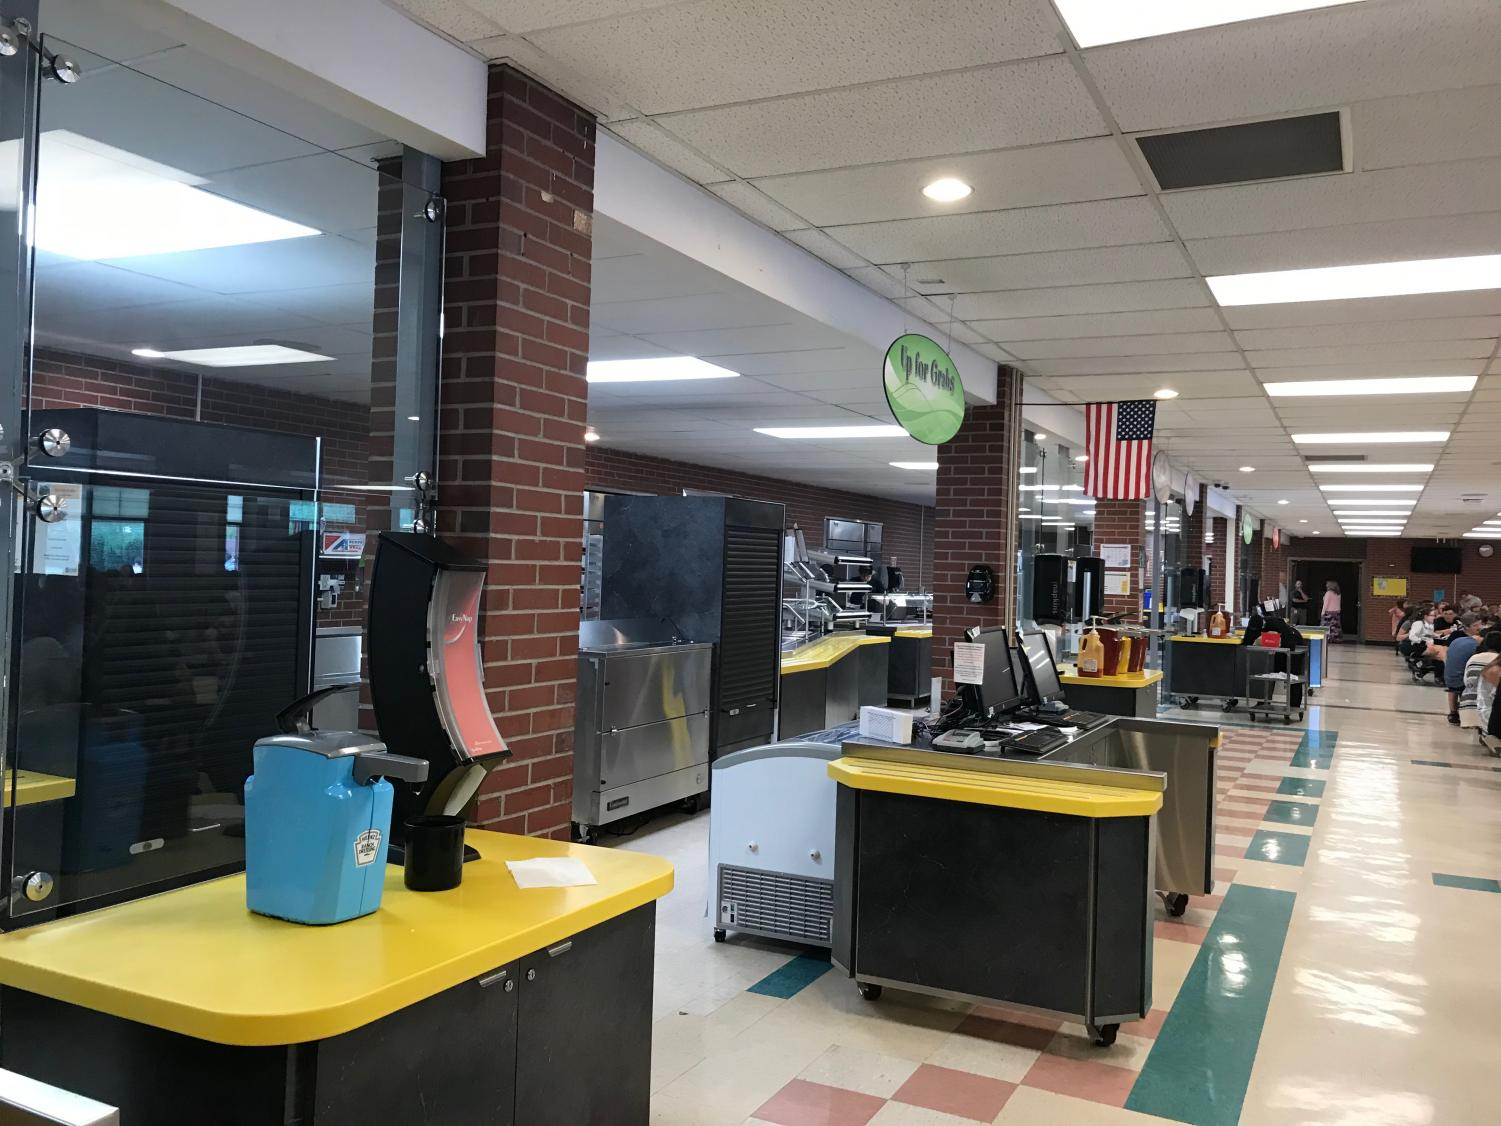 The NAI cafeteria serves a variety of foods with multiple lunch lines.